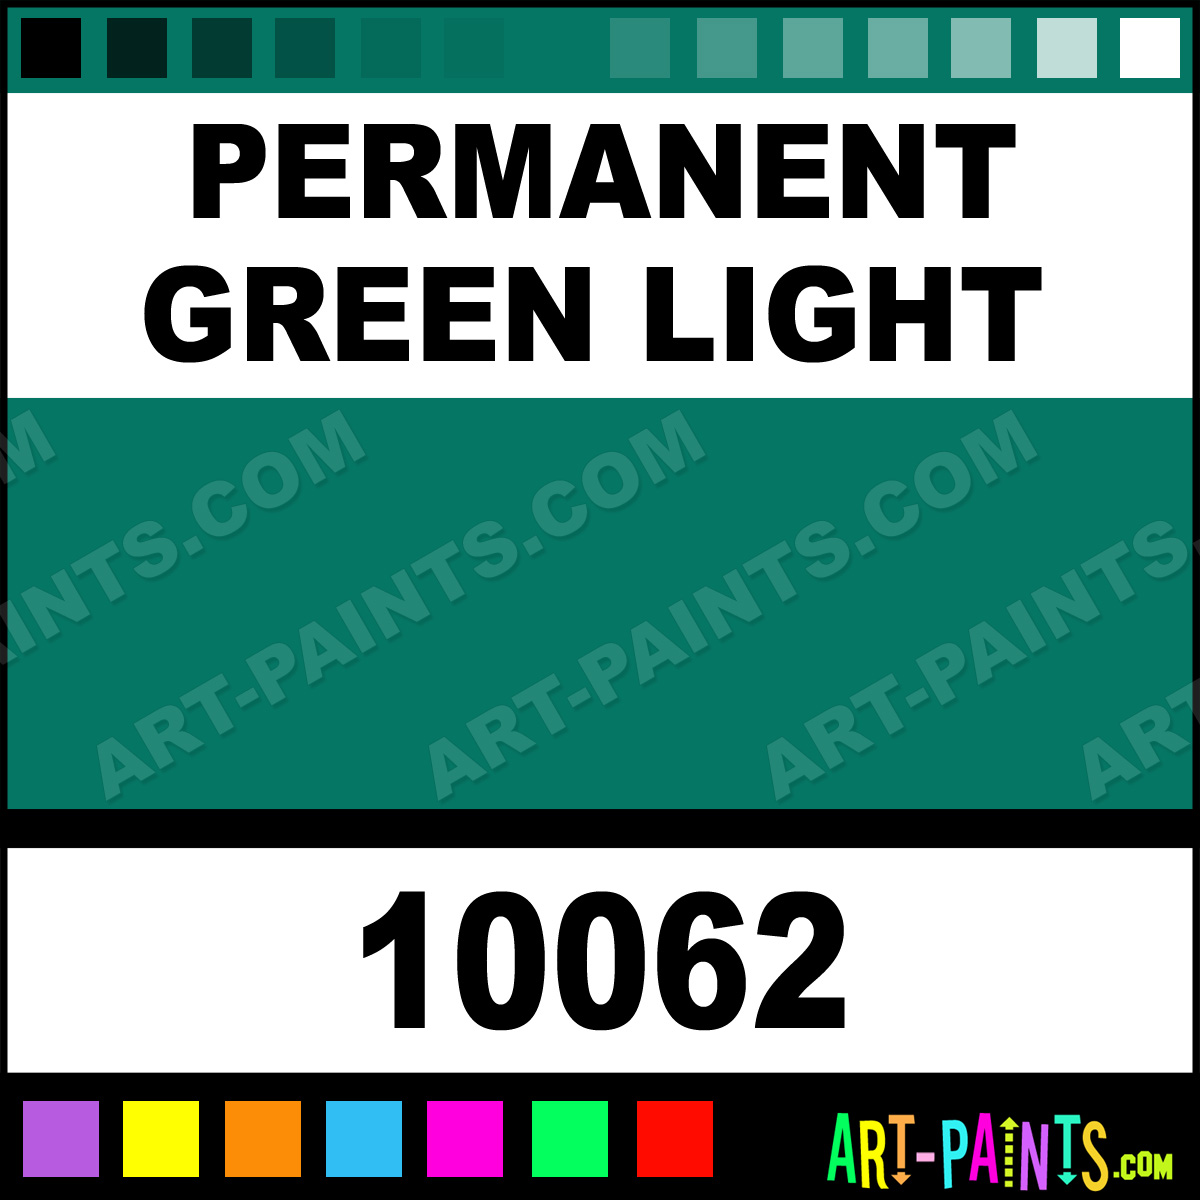 El juego de las imagenes-http://www.art-paints.com/Paints/Oil/Utrecht/Permanent-Green-Light/Permanent-Green-Light-lg.jpg